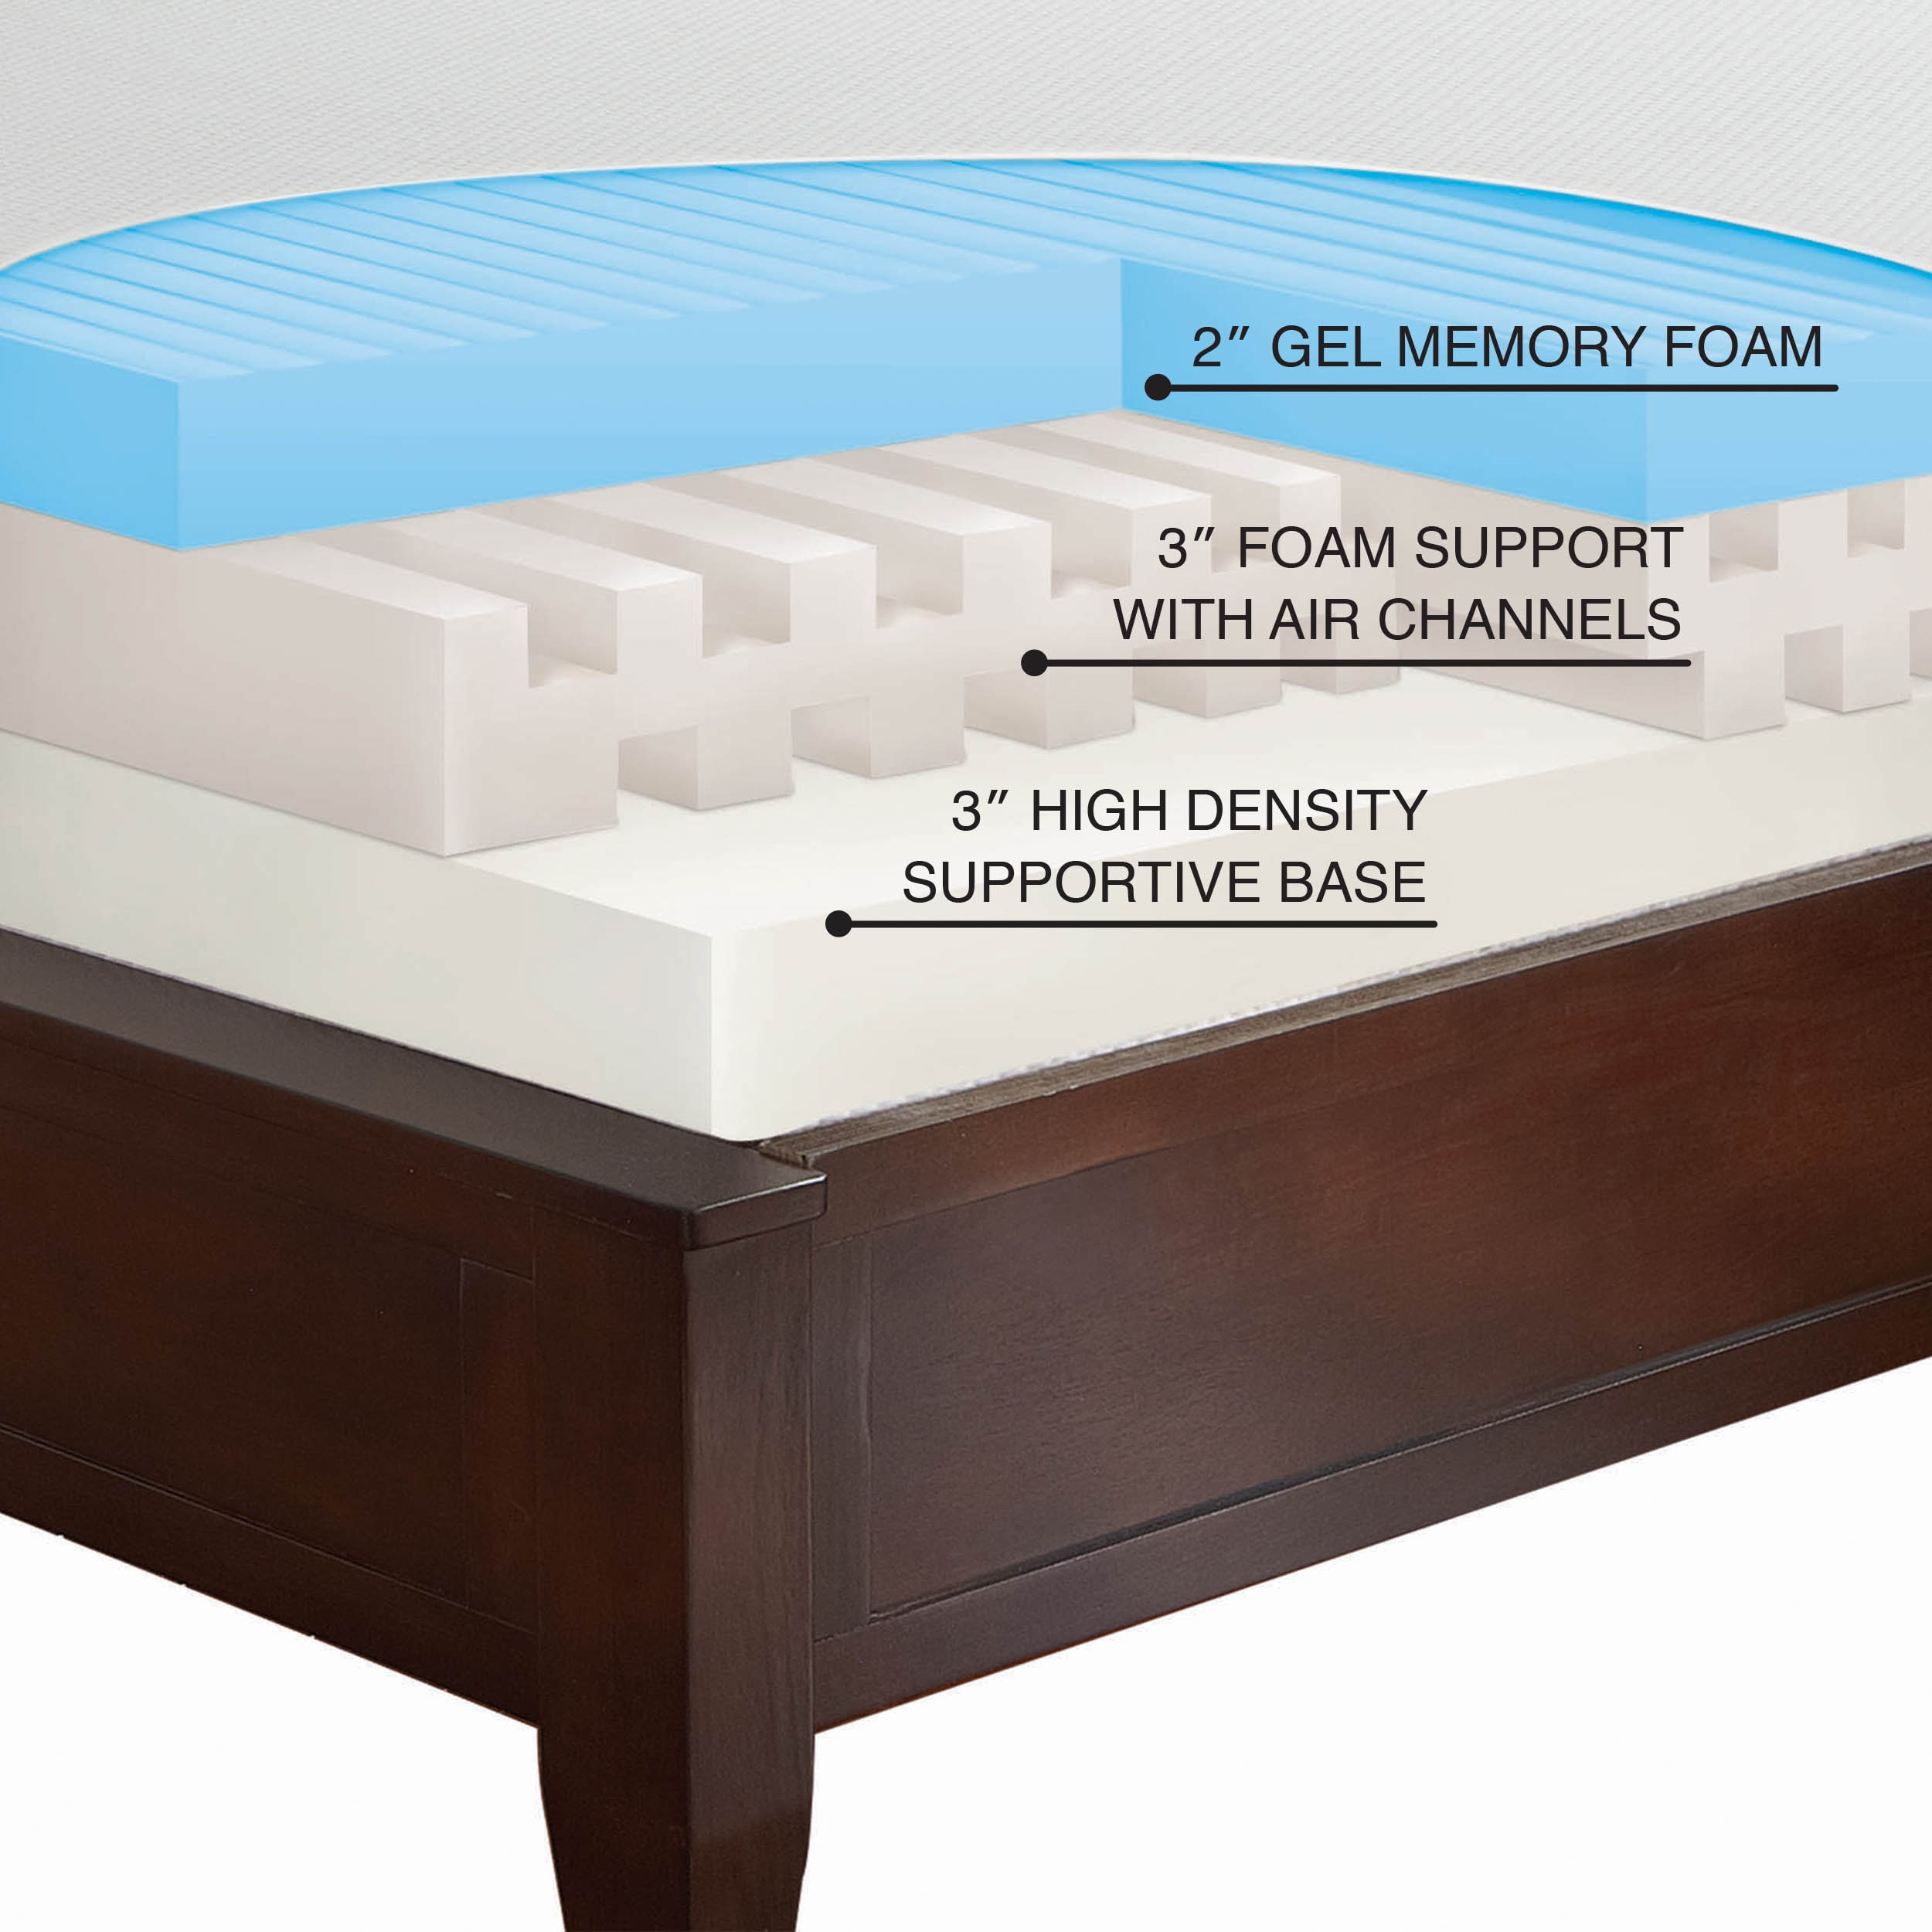 WHITE by Sarah Peyton 8-inch Twin-size Convection-Cooled Gel Memory Foam Mattress (Memory Foam Convection Cooled Gel 8inch Twin)